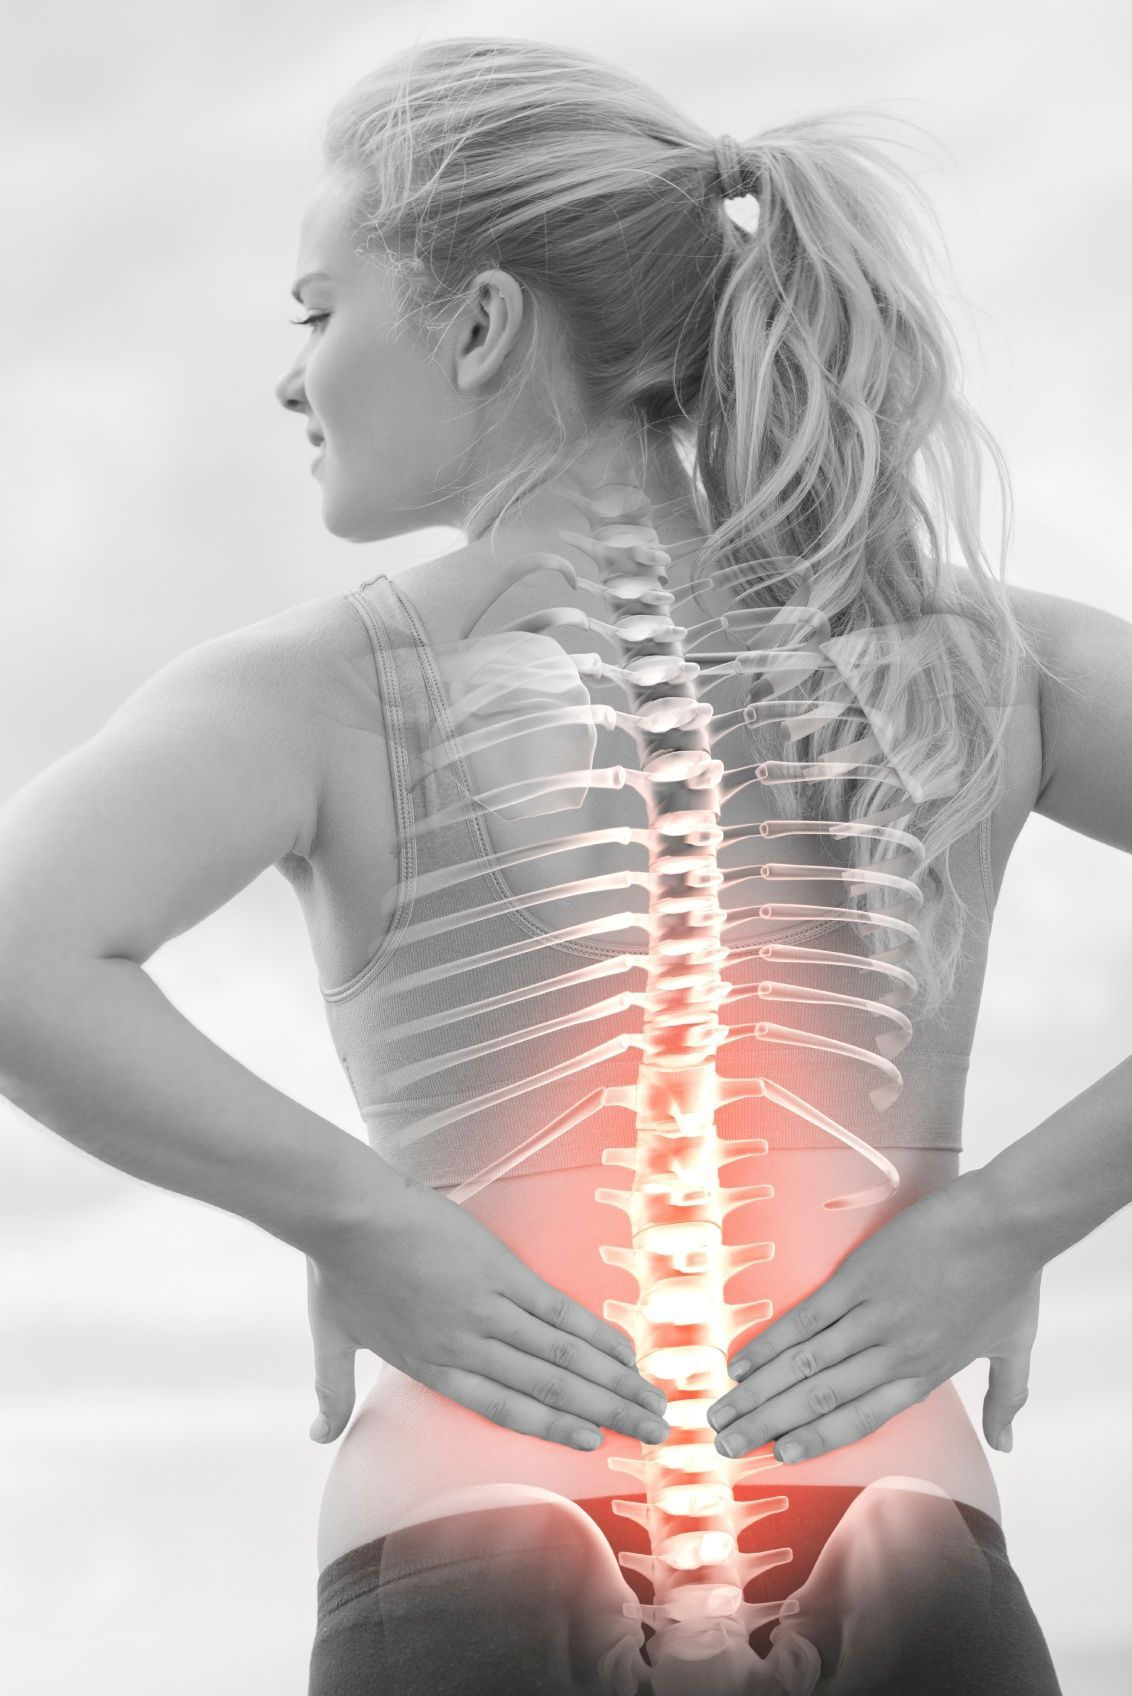 Chiropractic Care Clinic in Nashville, TN